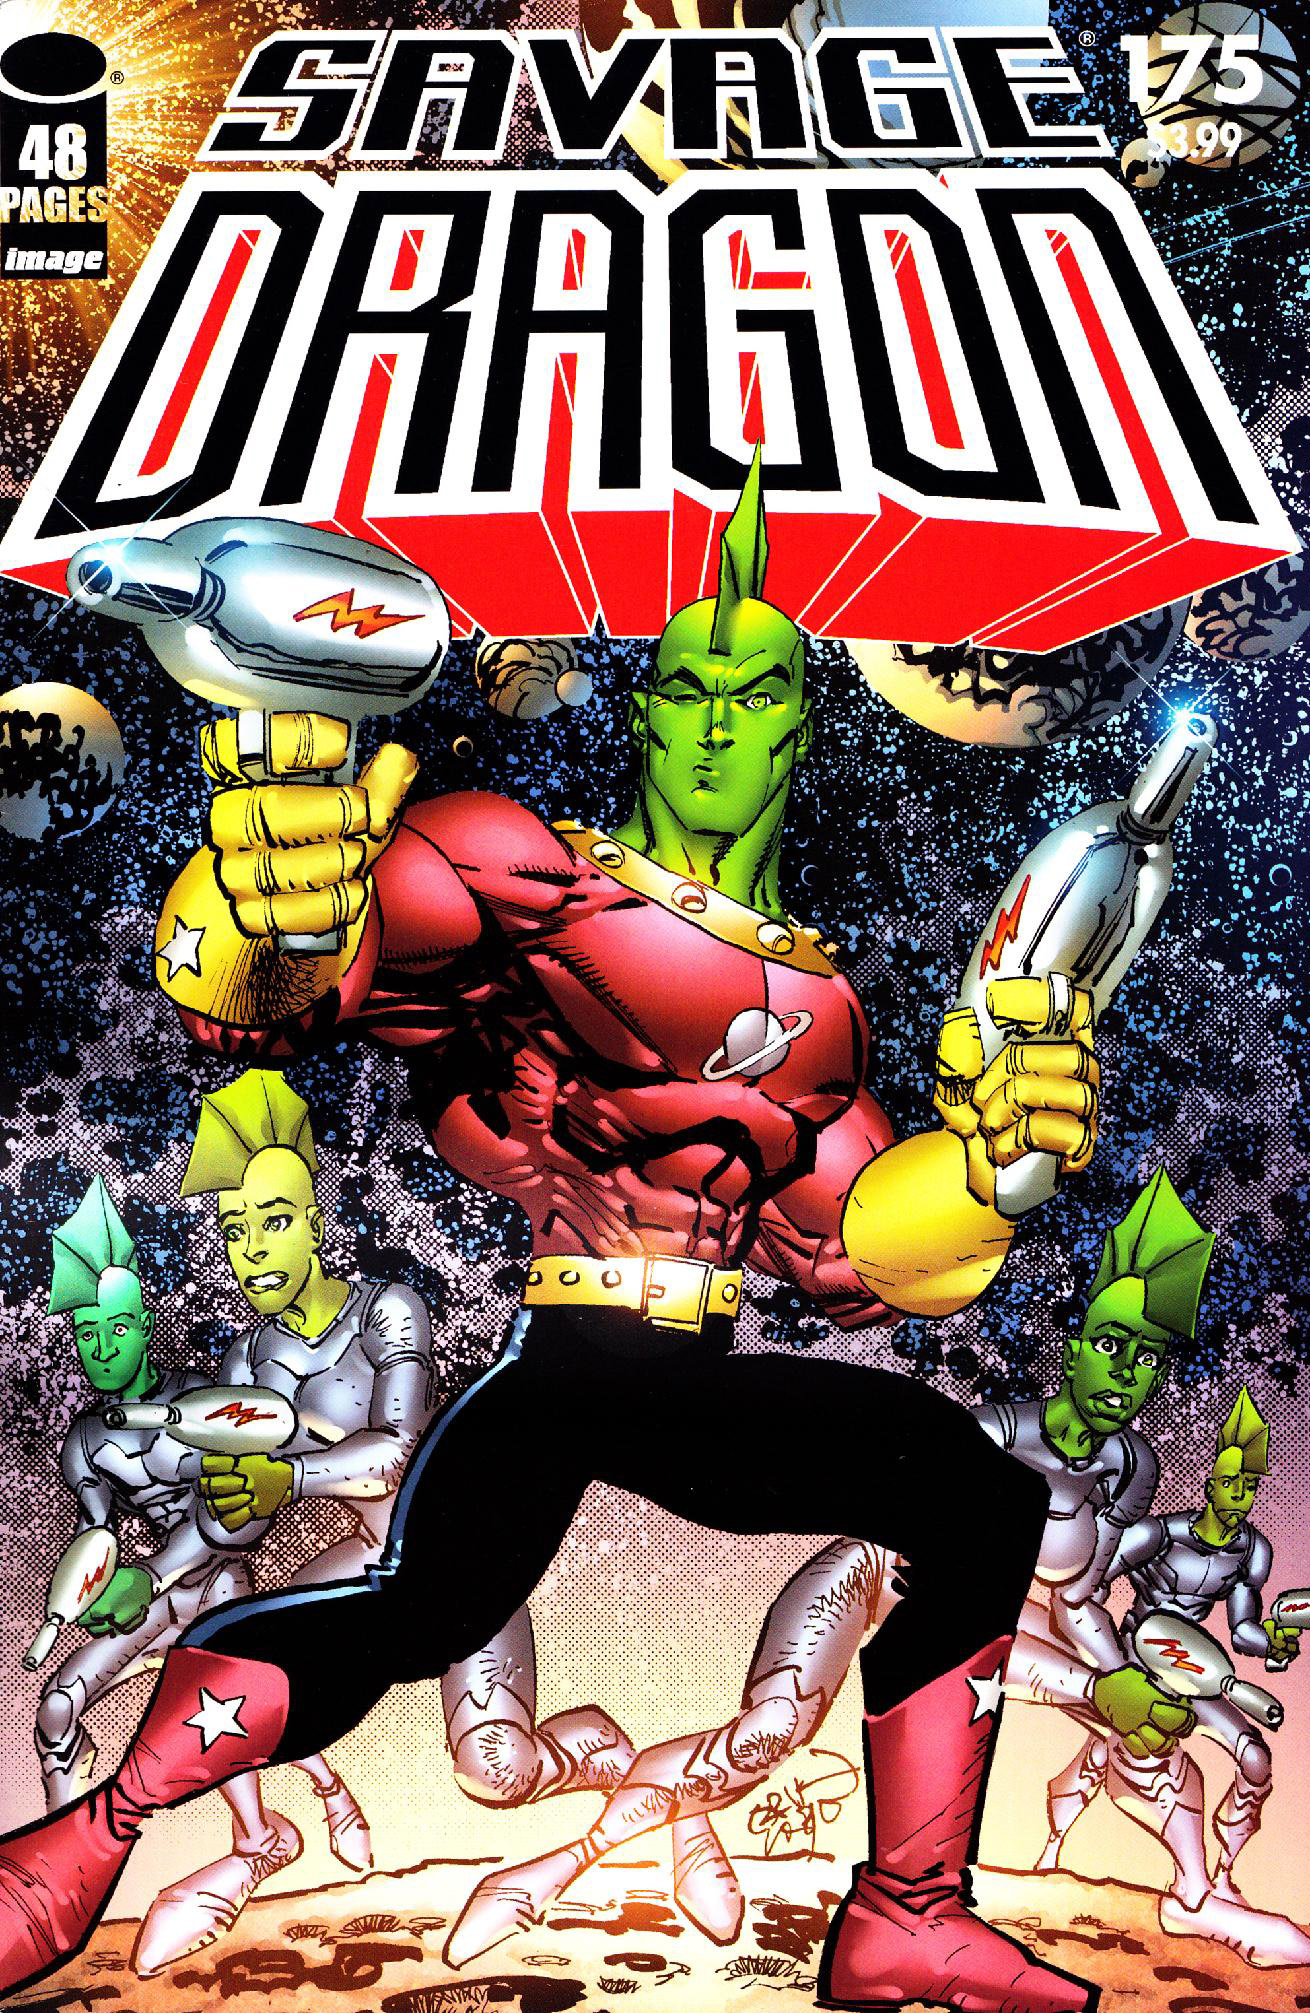 Cover Savage Dragon Vol.2 #175